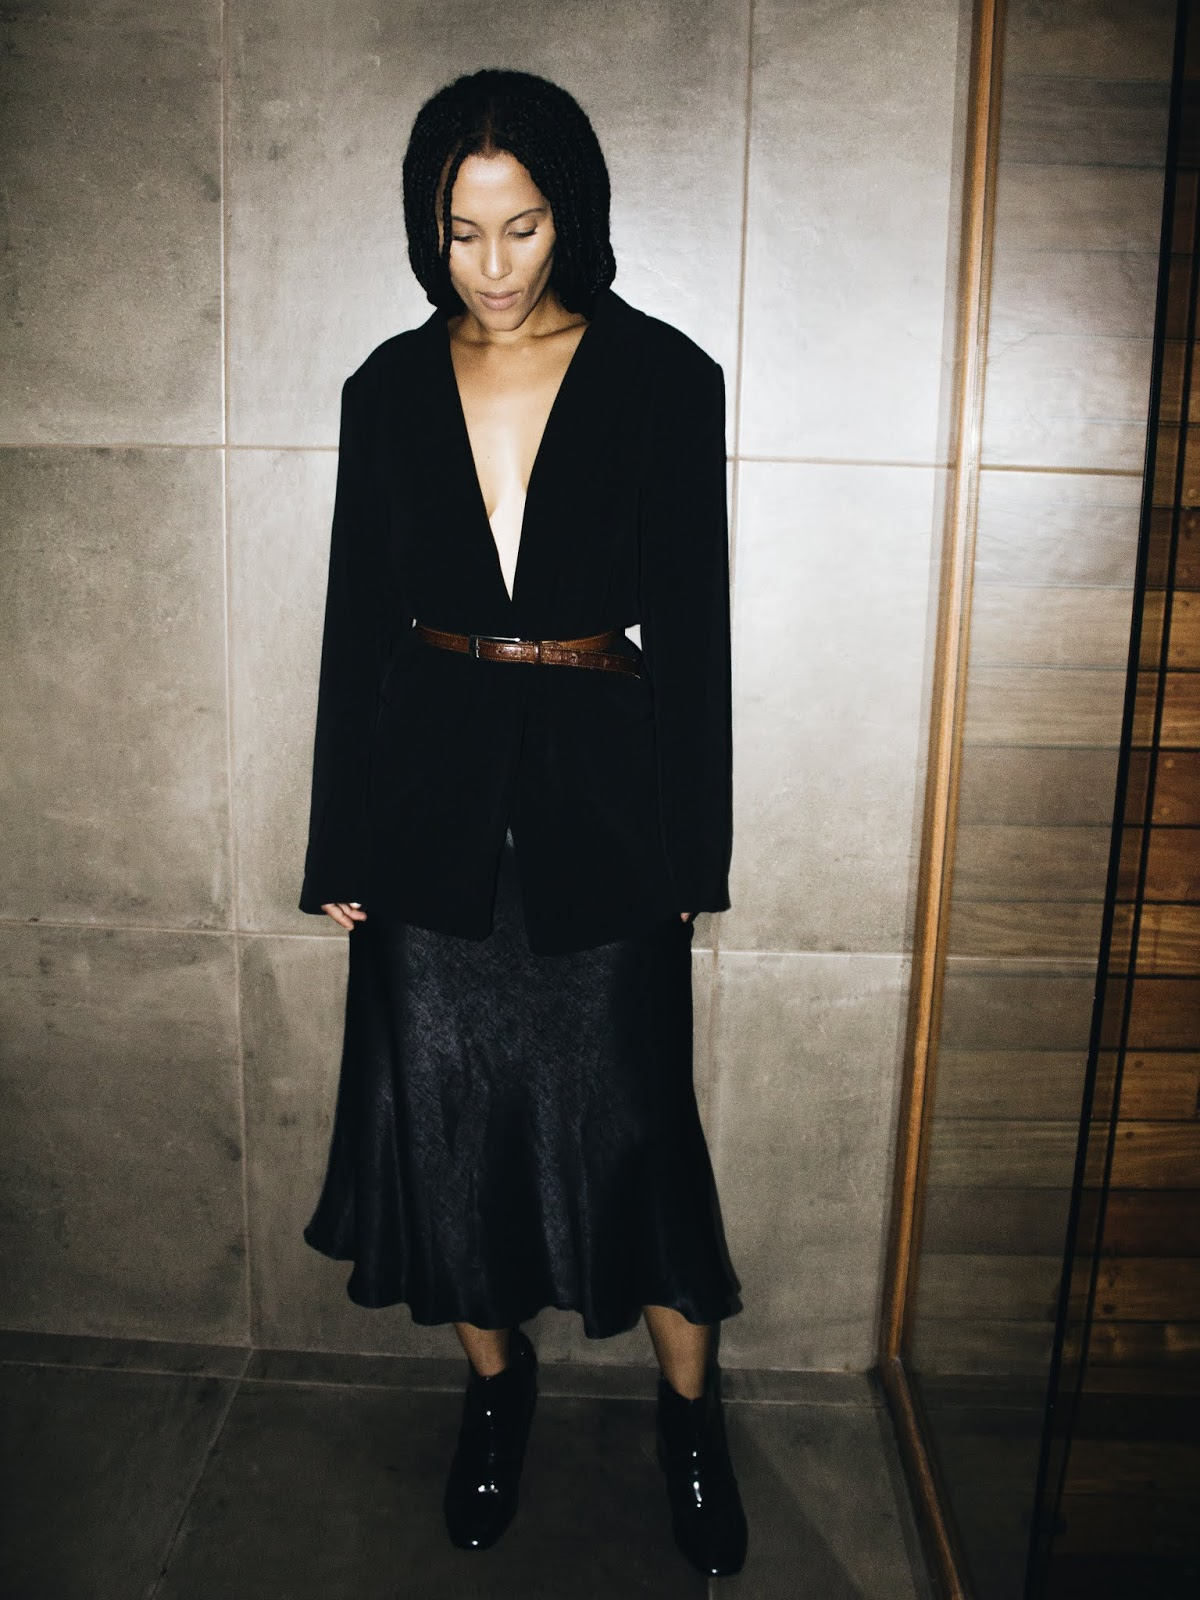 Liezel-Esquire-how-to-wear-all-black